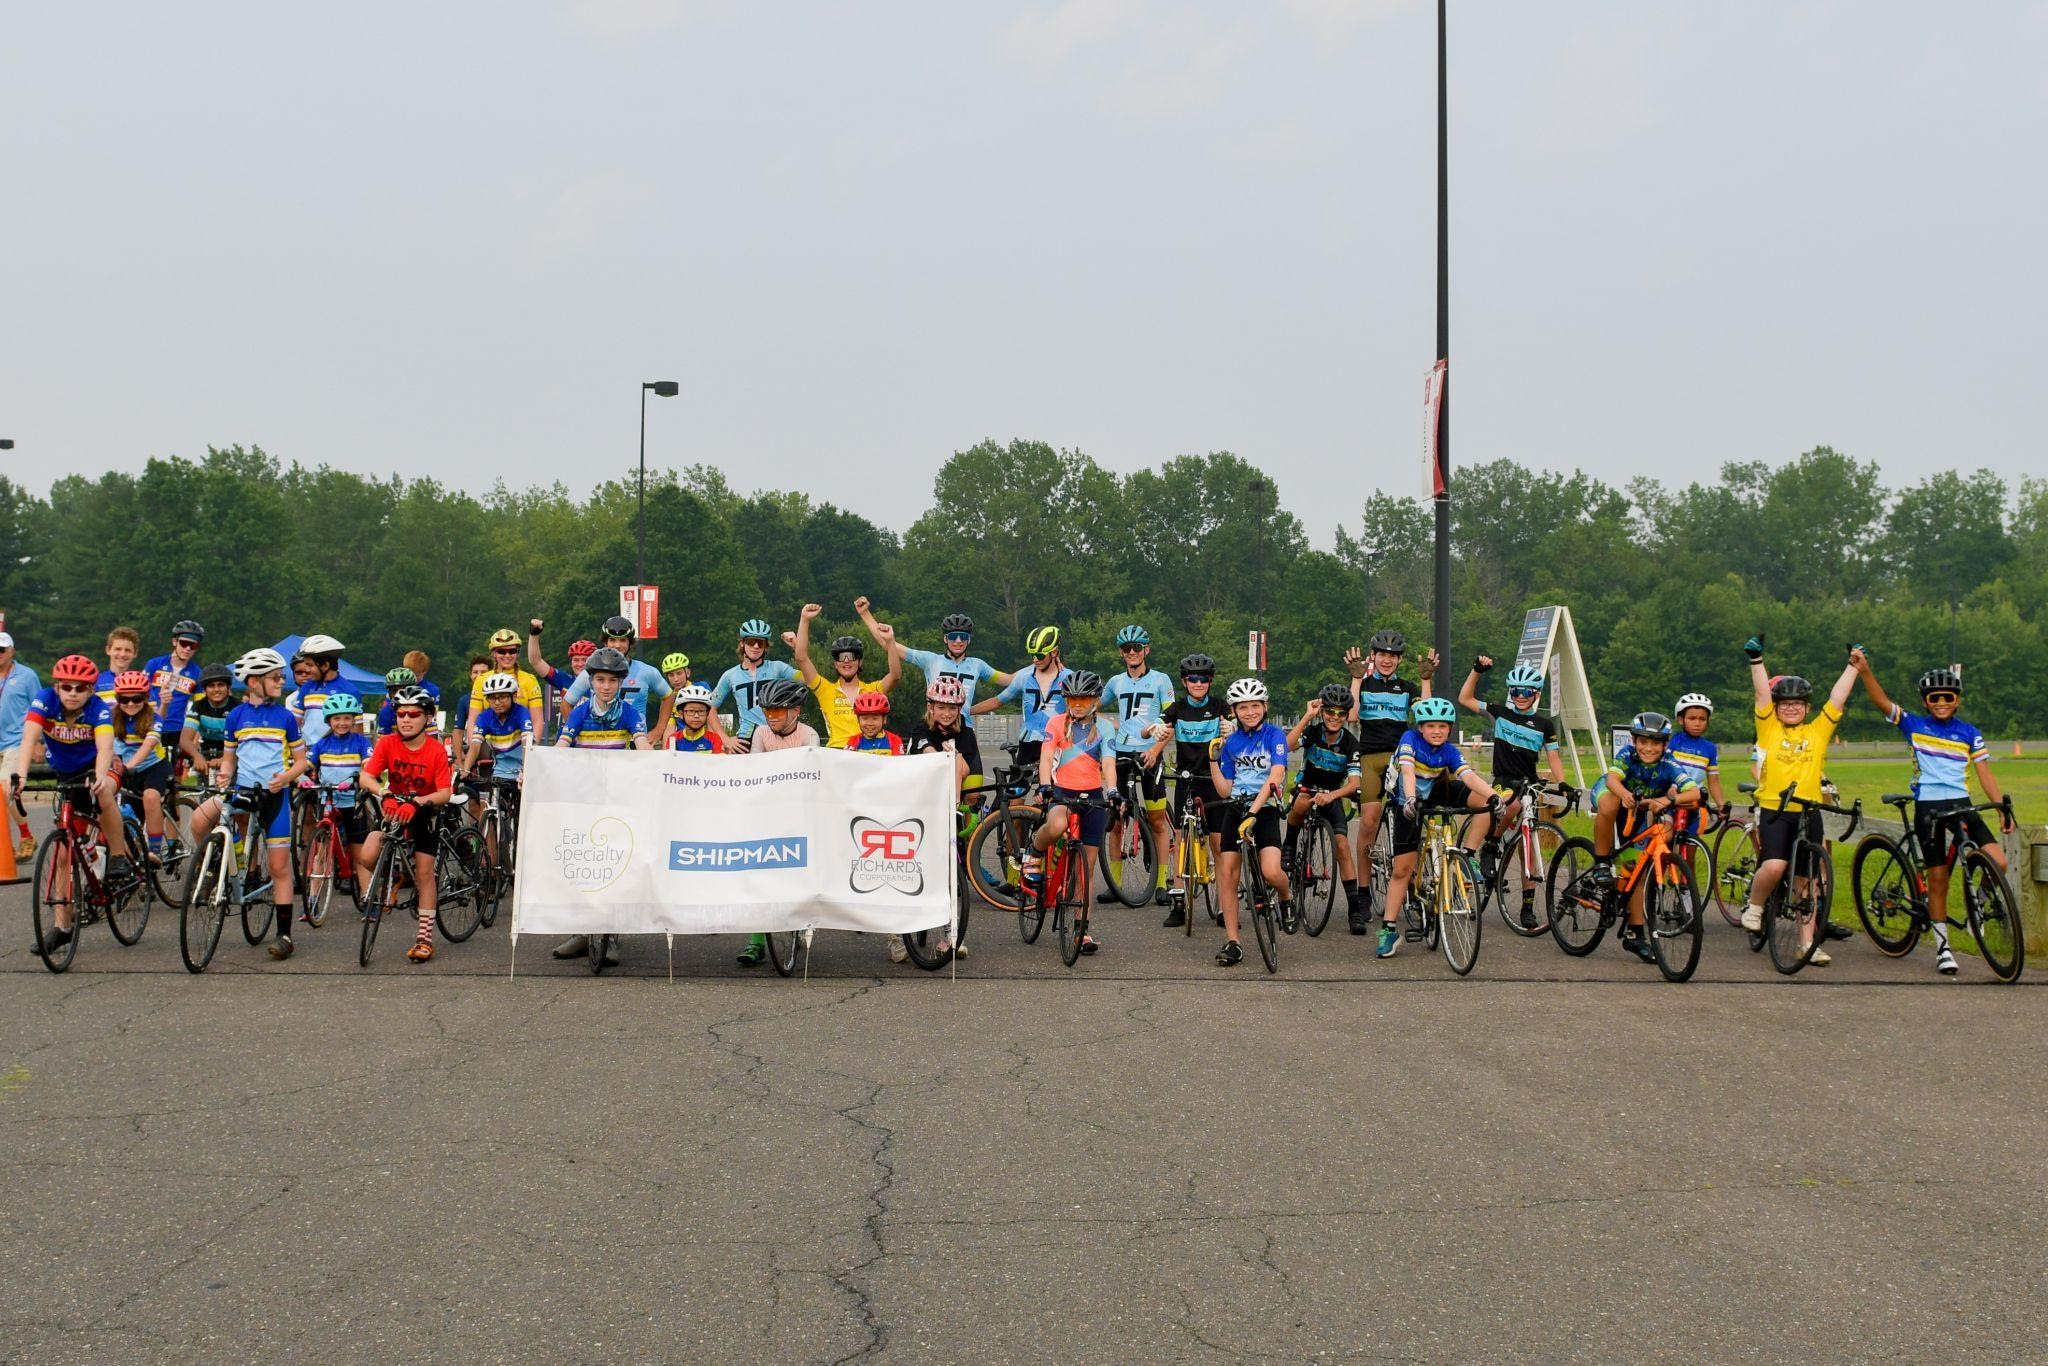 bike racers lining up for event